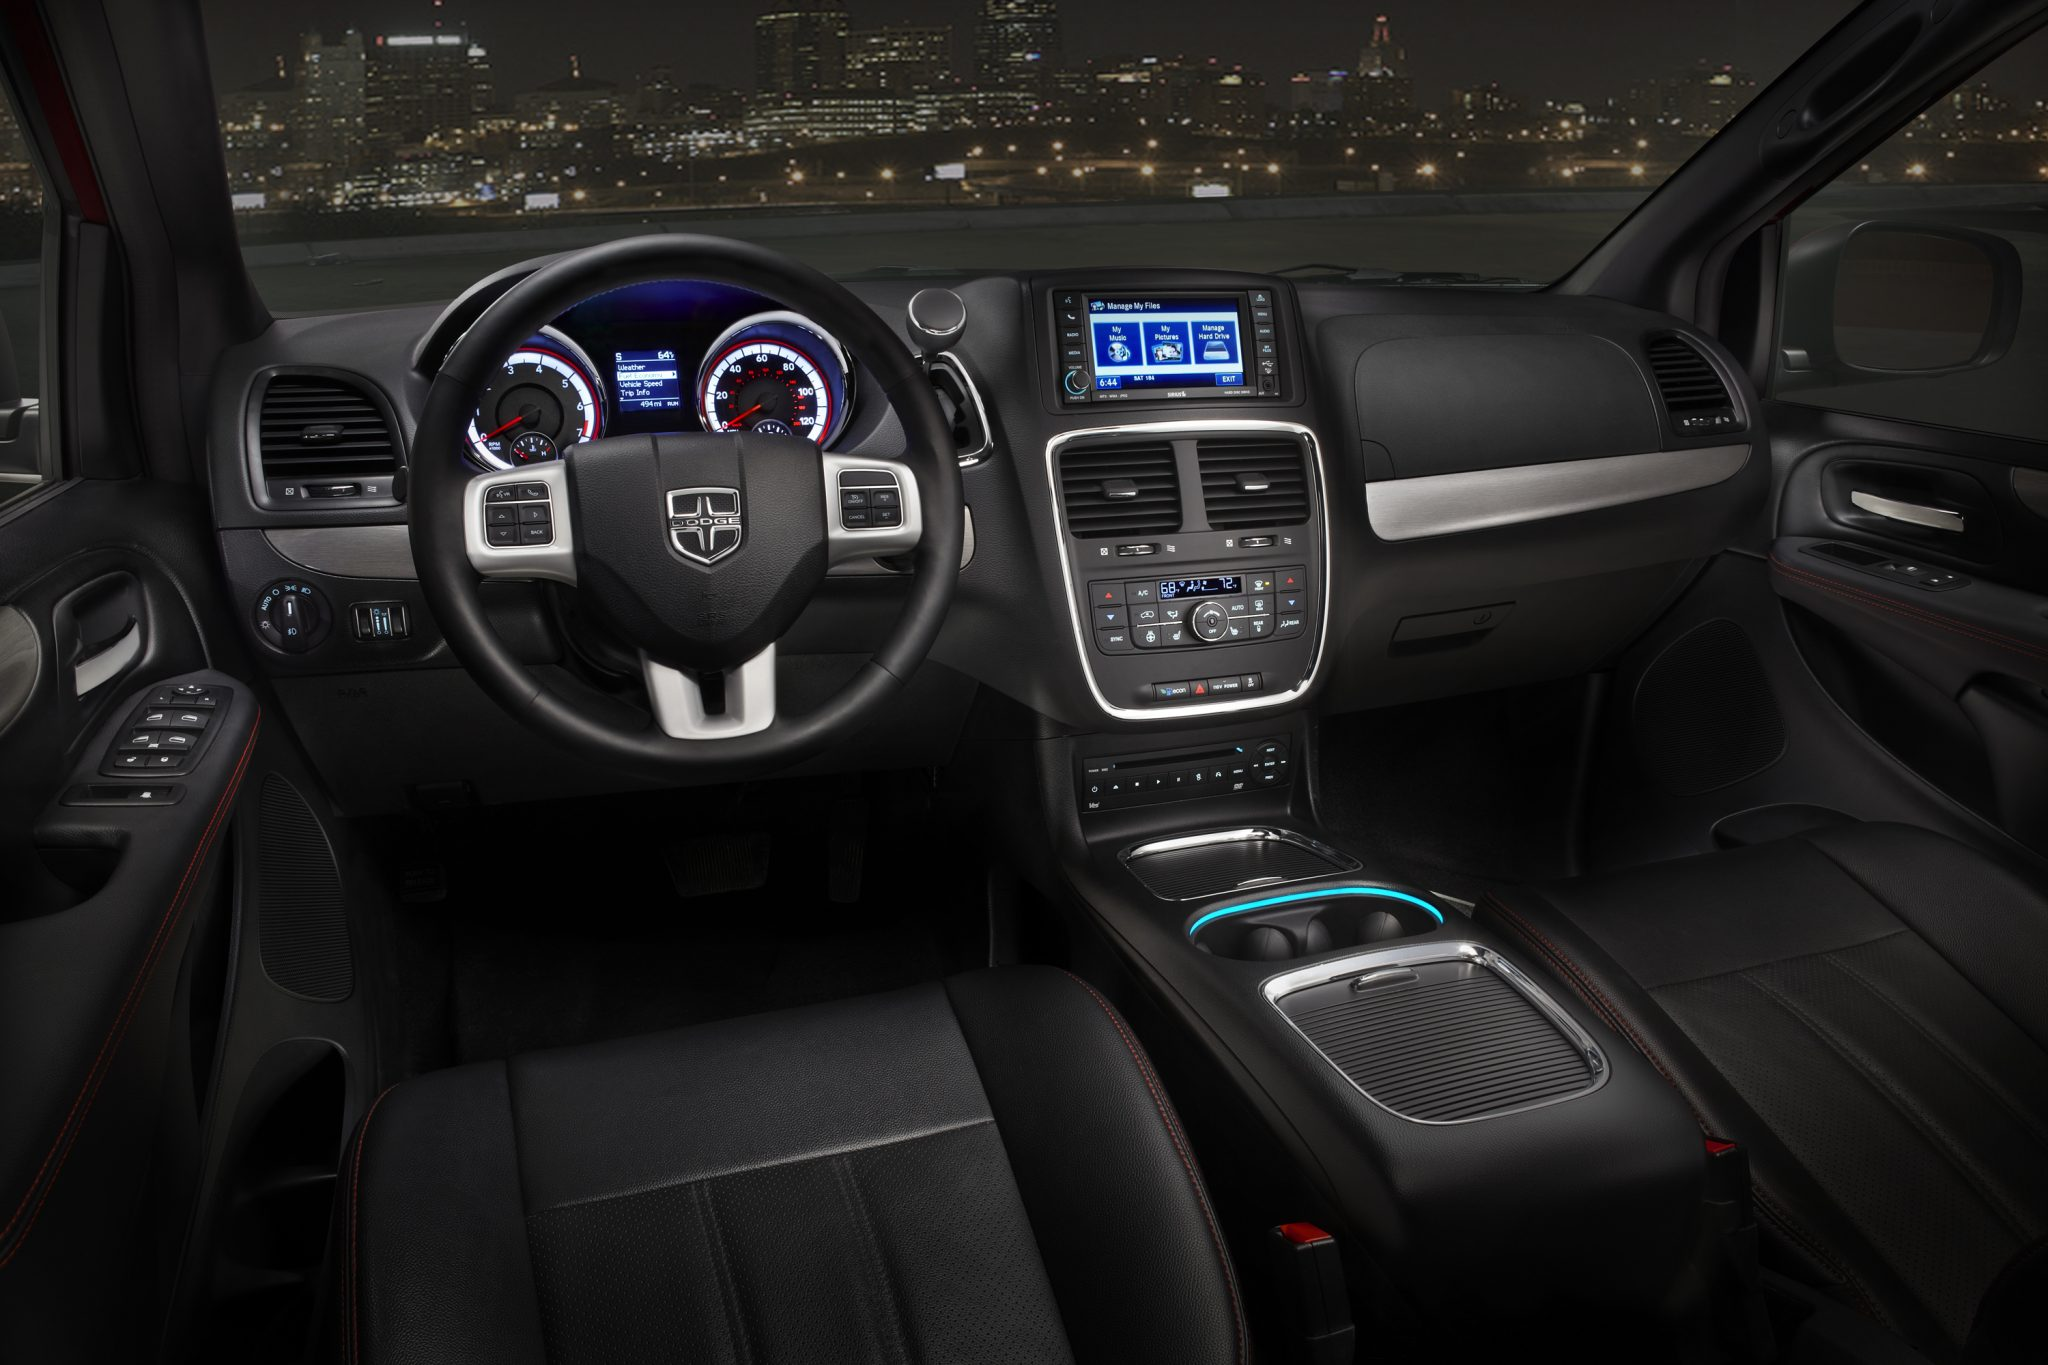 2013 Dodge Grand Caravan Overview The News Wheel